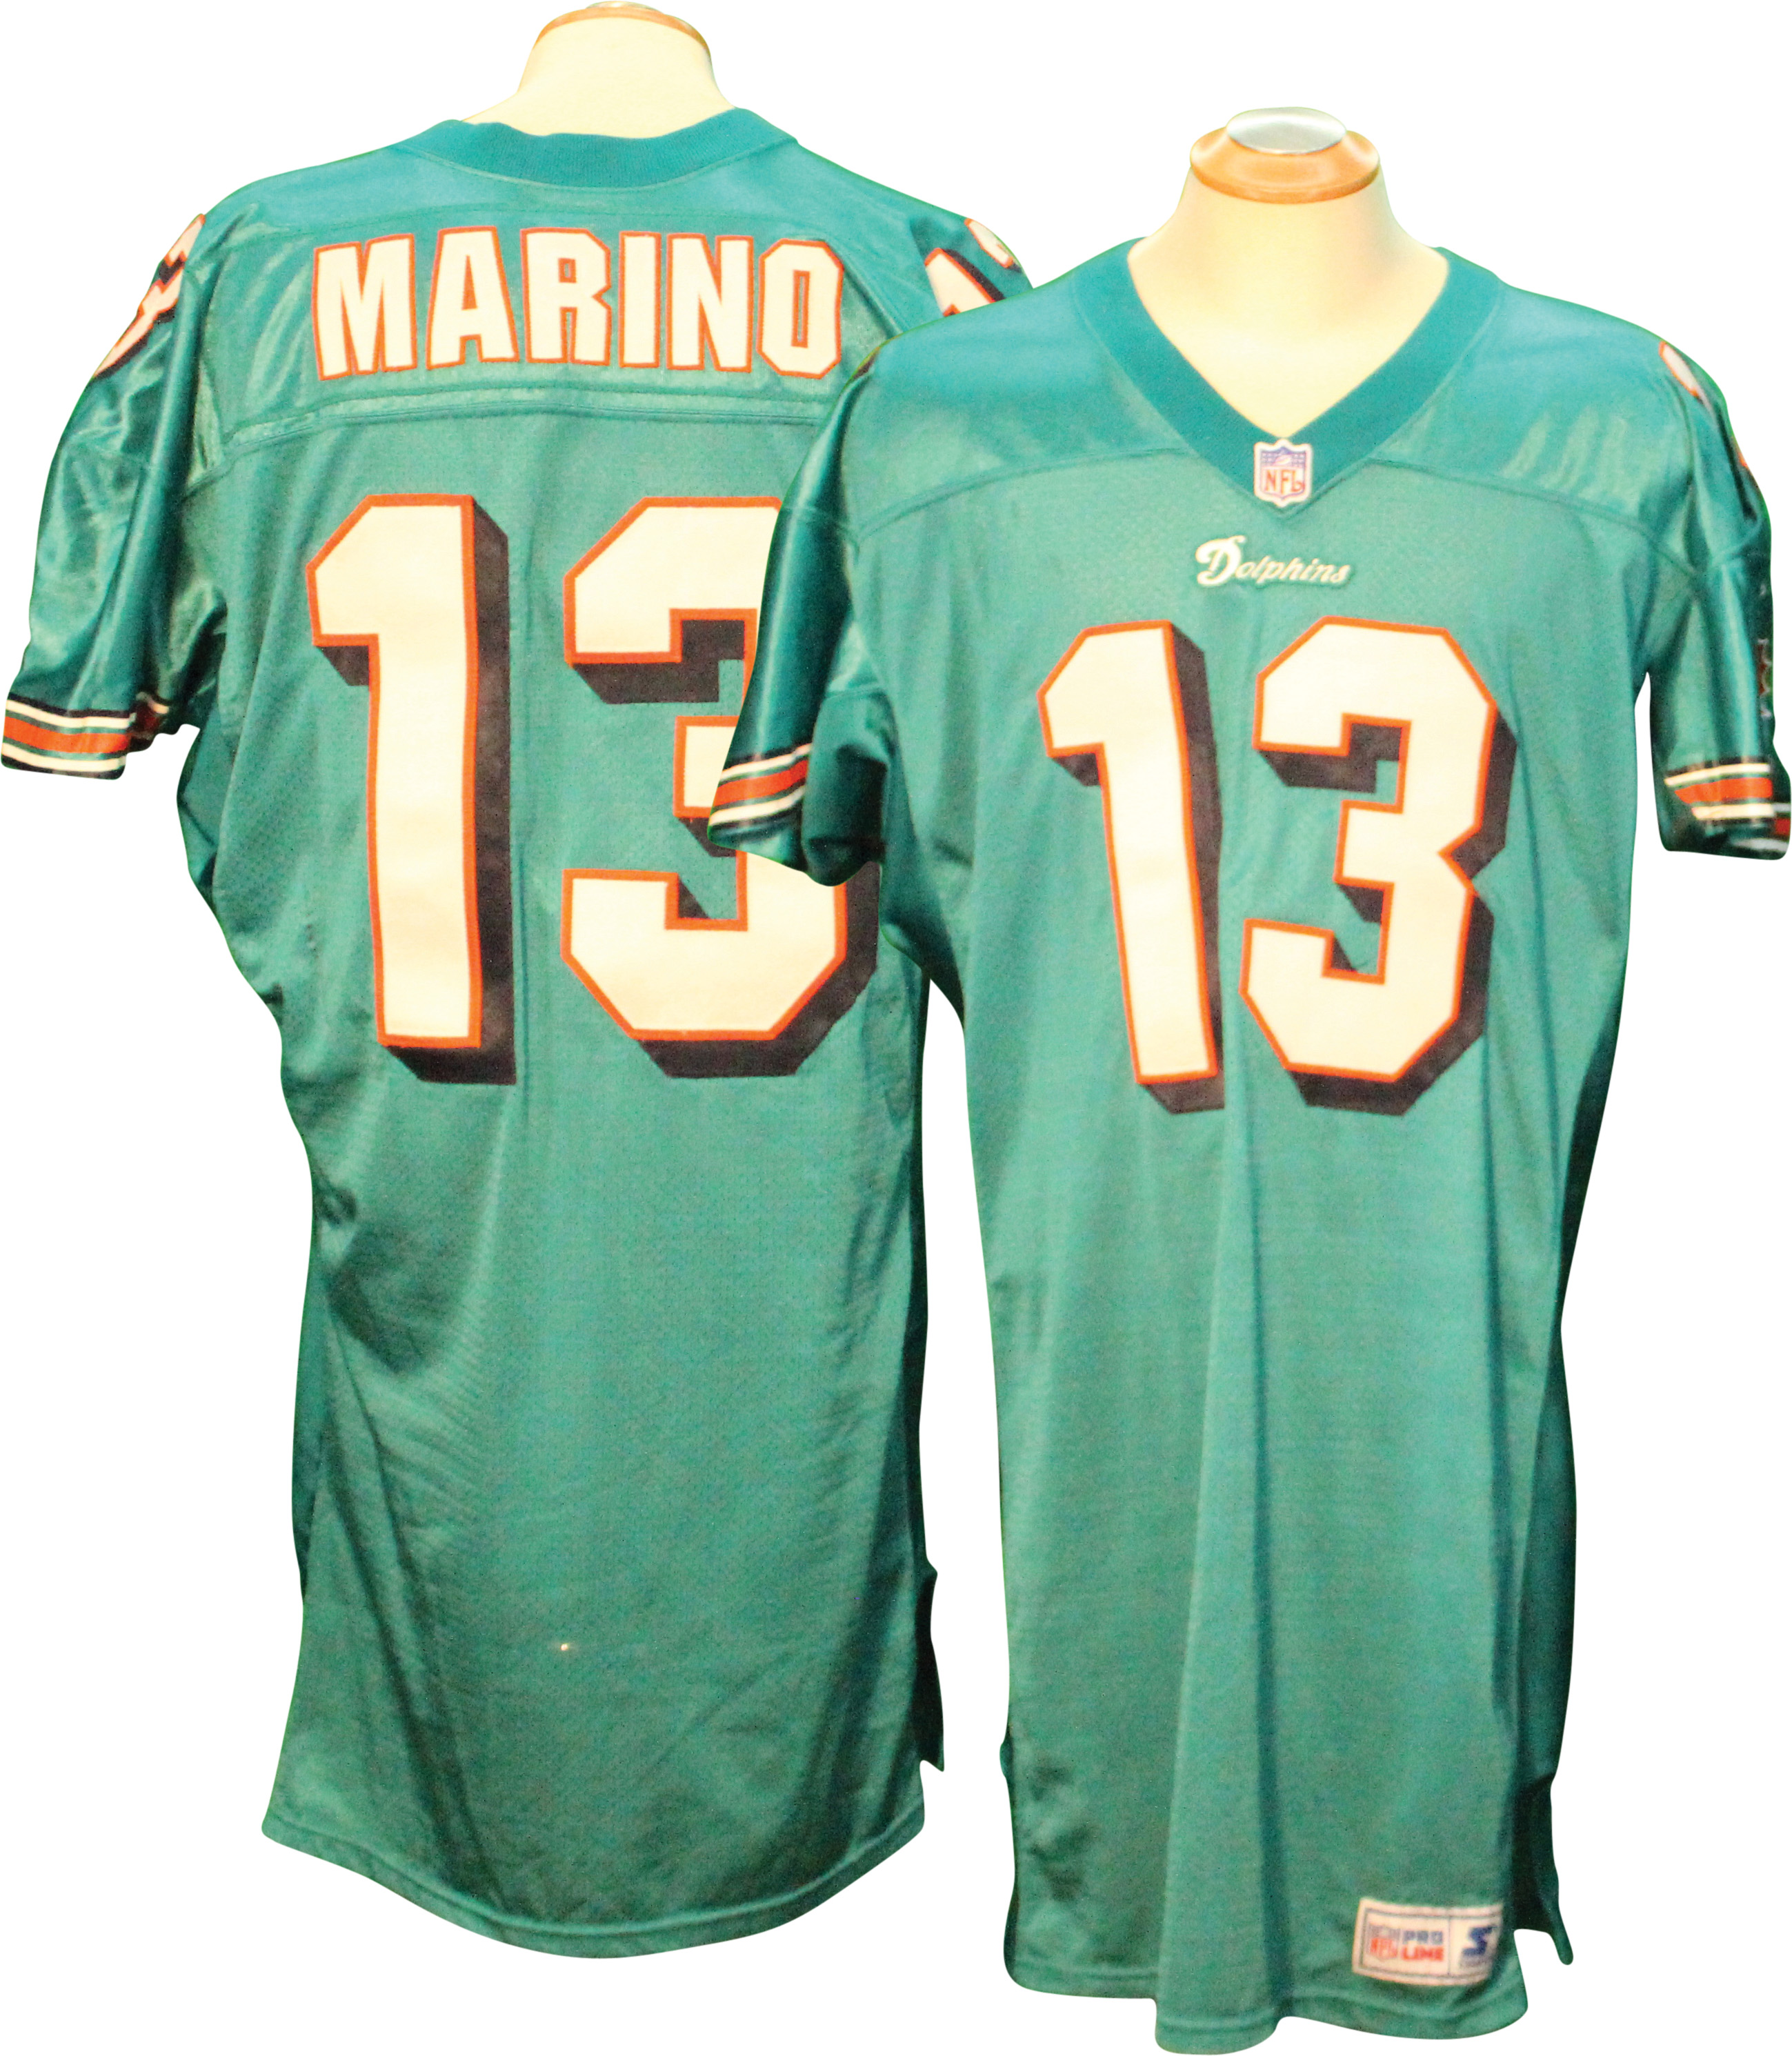 65cbb822d547 ... Shoes 1997 Dan Marino Miami Dolphins Game Used Jersey .